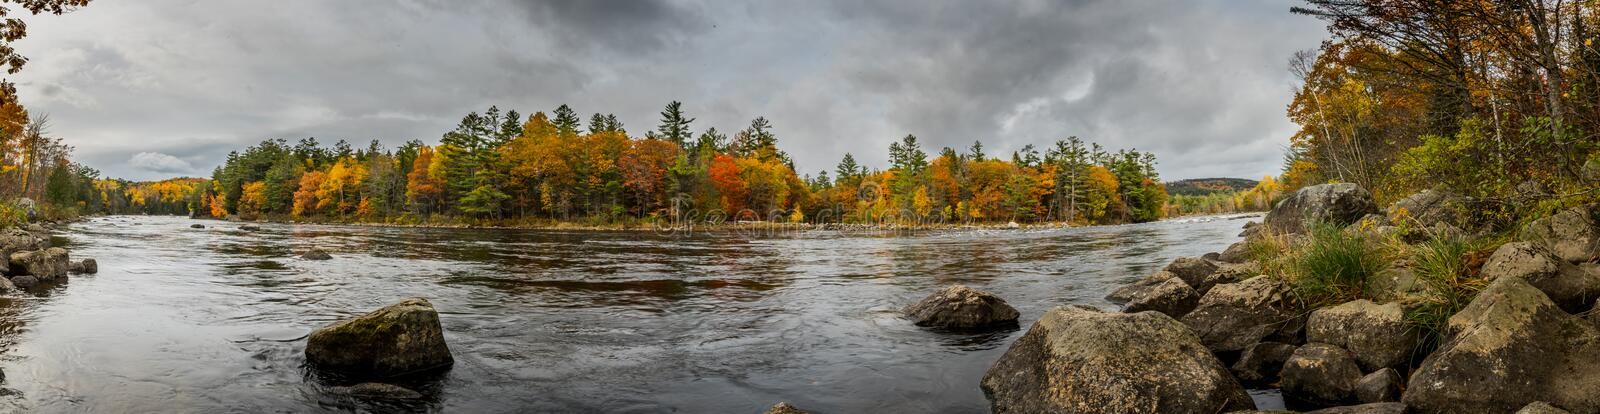 Penobscot River Panorama stock photography